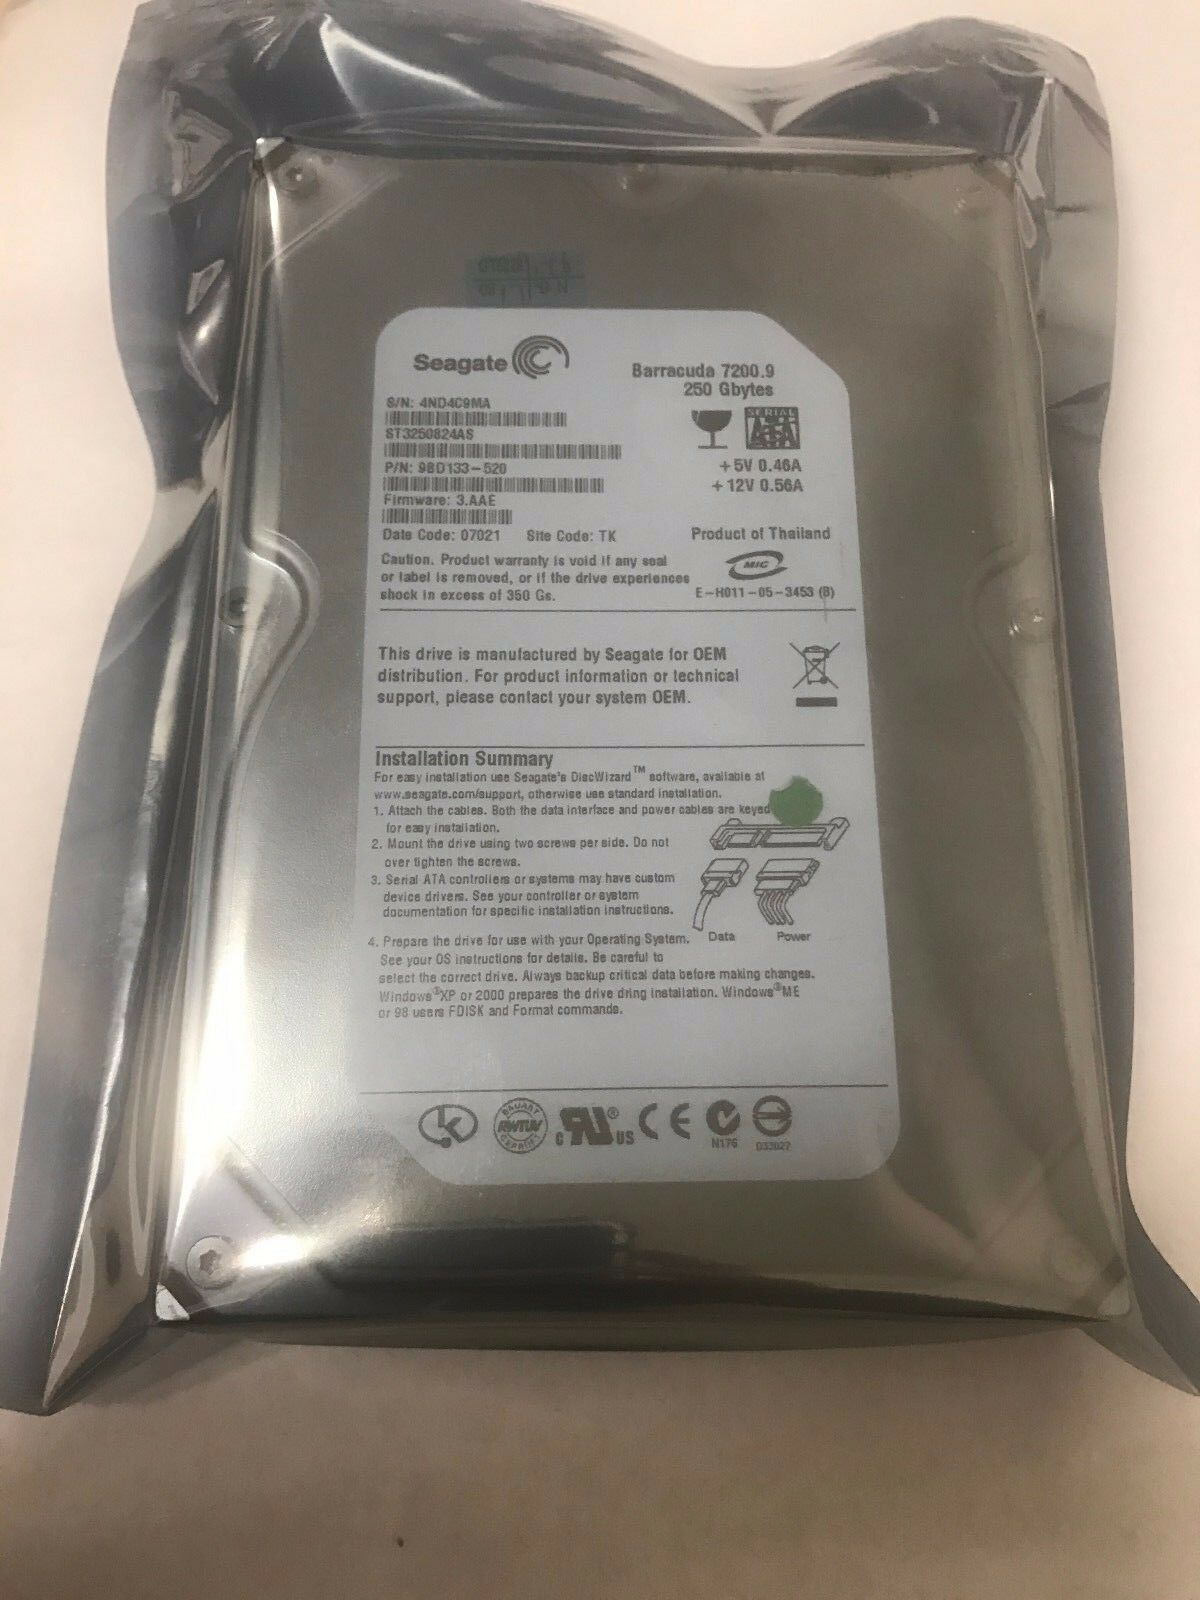 Seagate Barracuda 72009 250gb 7200rpm Sata 3gbps 8mb 35 Firecuda Inch 2tb Sshd 5 Years Warranty Hddssd For Pc Gaming 1 Of 1free Shipping